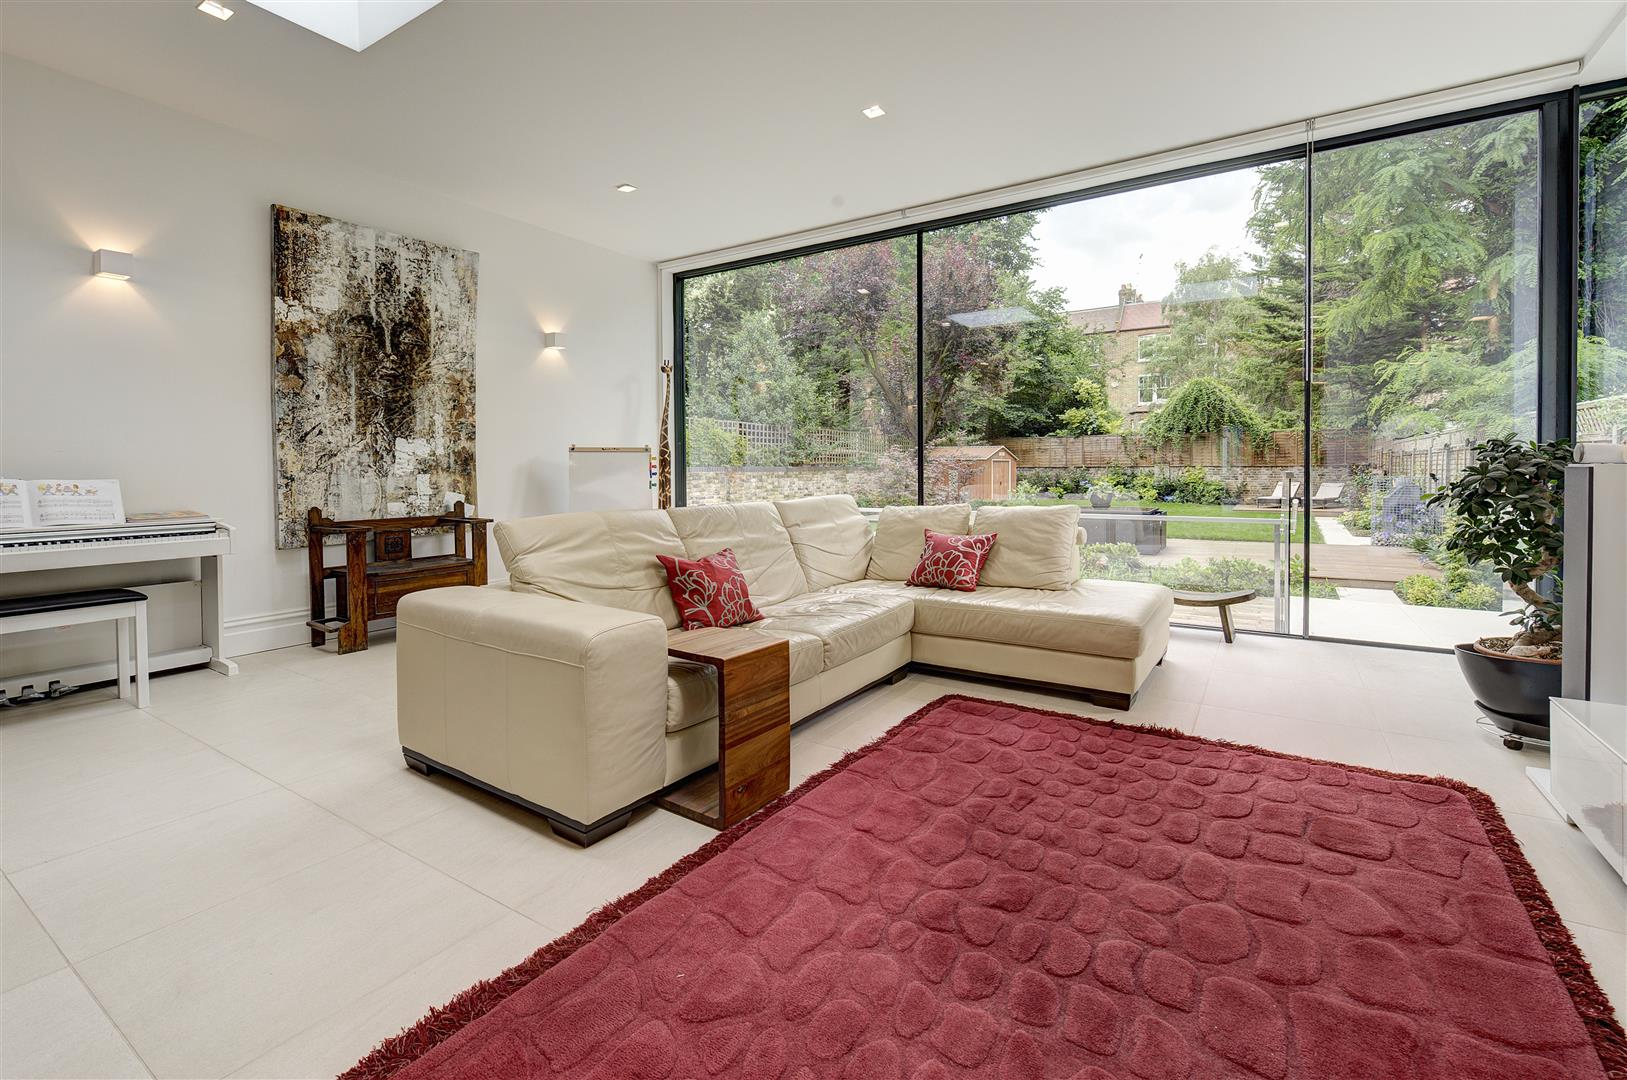 4 Bedrooms Flat for sale in Garden Maisonette, Canfield Gardens, South Hampstead, NW6